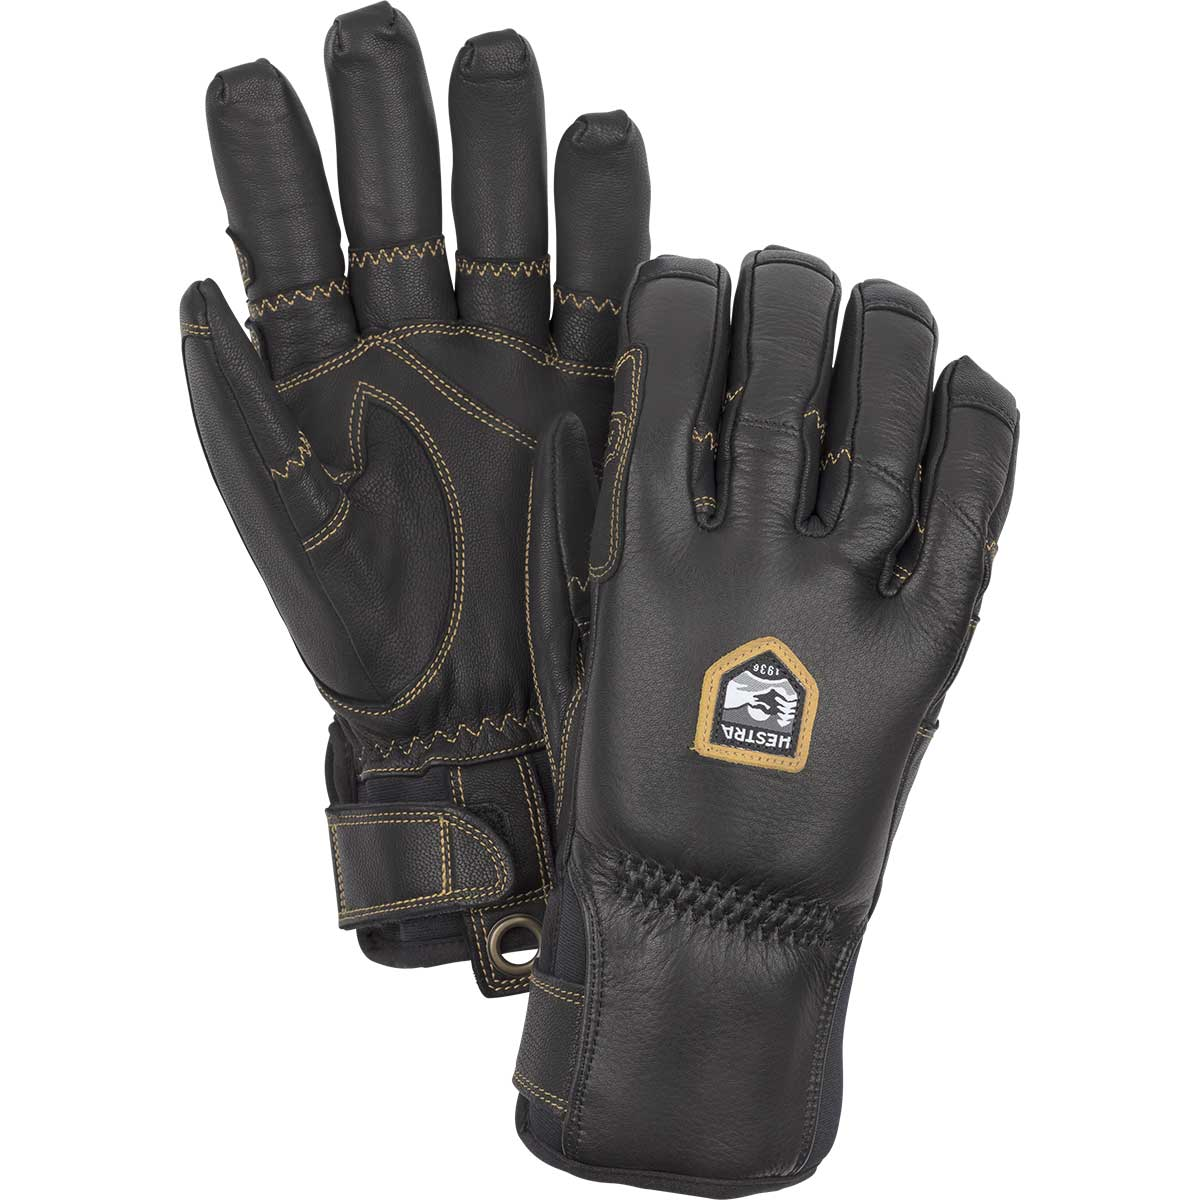 Hestra Ergo Grip Incline Glove in black and black